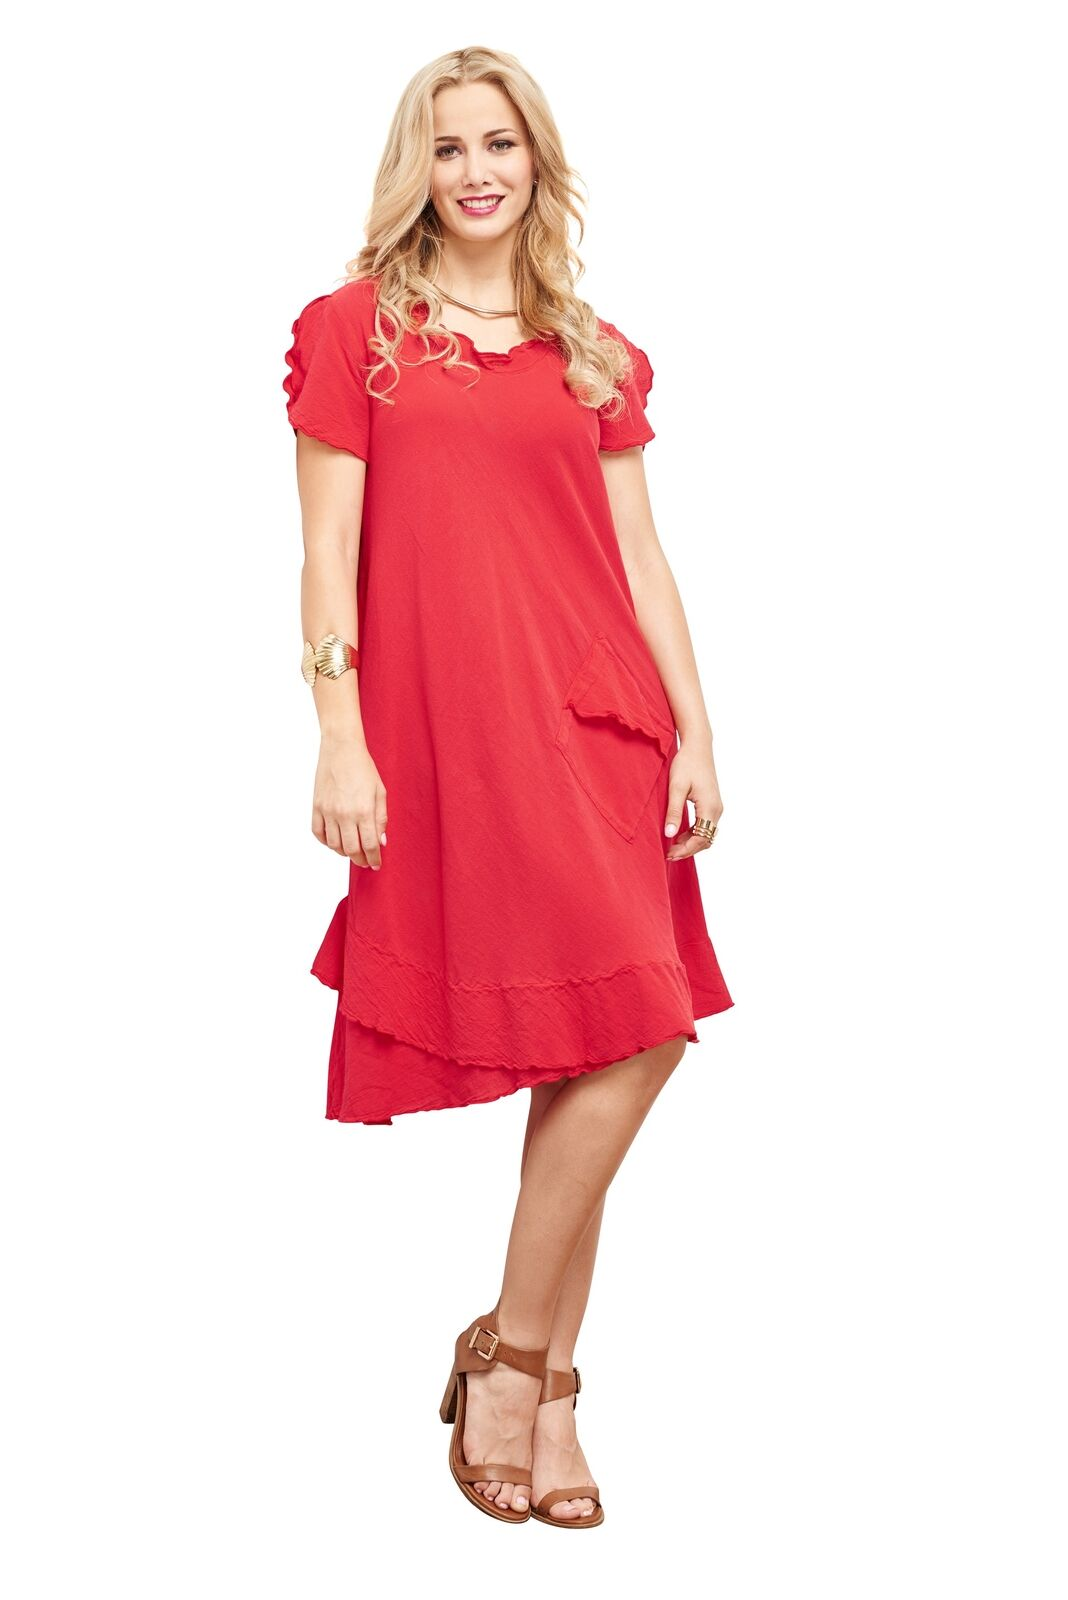 Oh My Gauze LA Dress 100% Comfortable Cotton Lagenlook